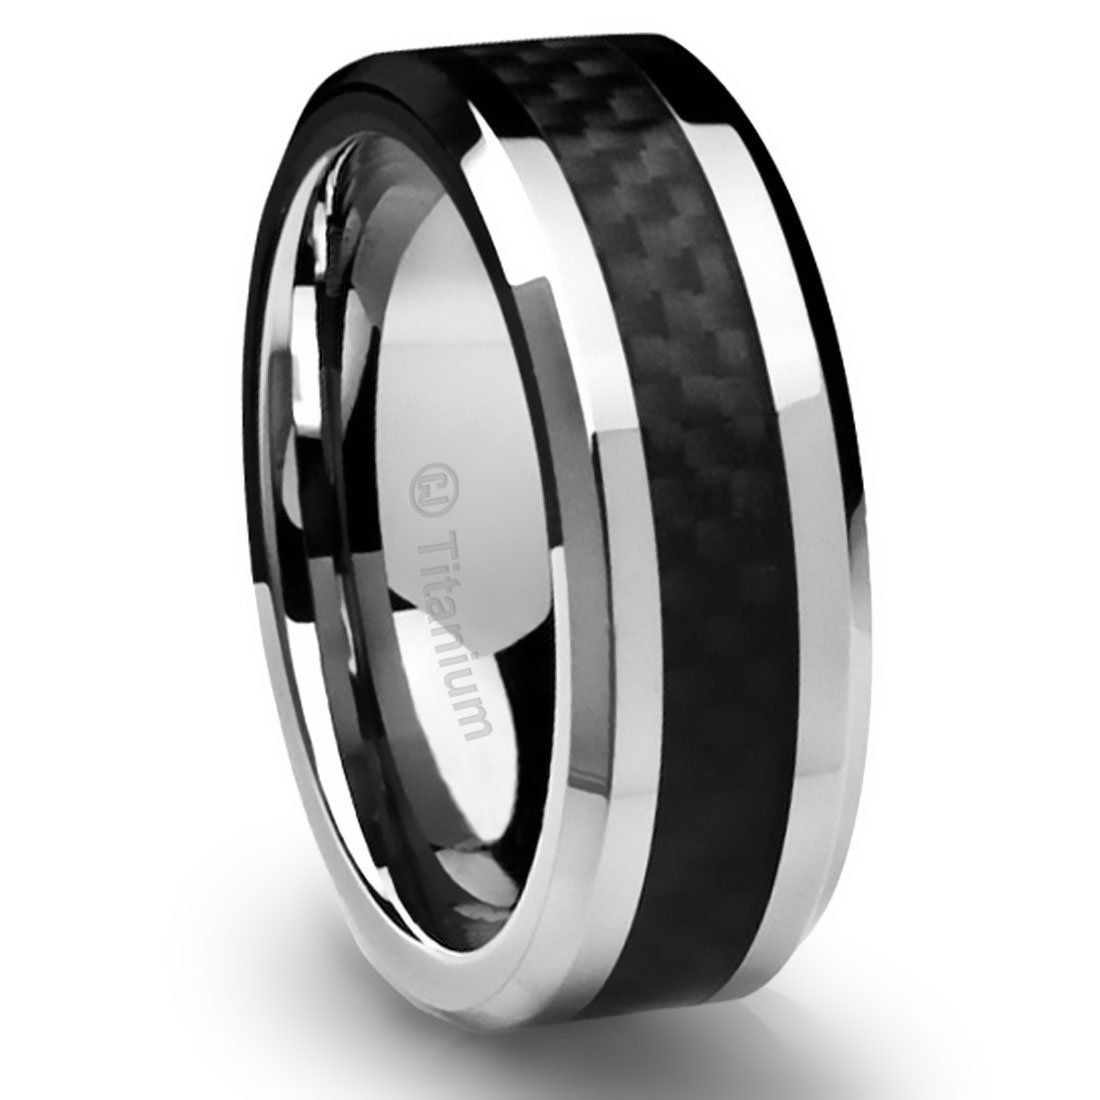 Cavalier Jewelers 8MM Men's Titanium Ring Wedding Band Black Carbon Fiber Inlay and Beveled Edges [Size 10]